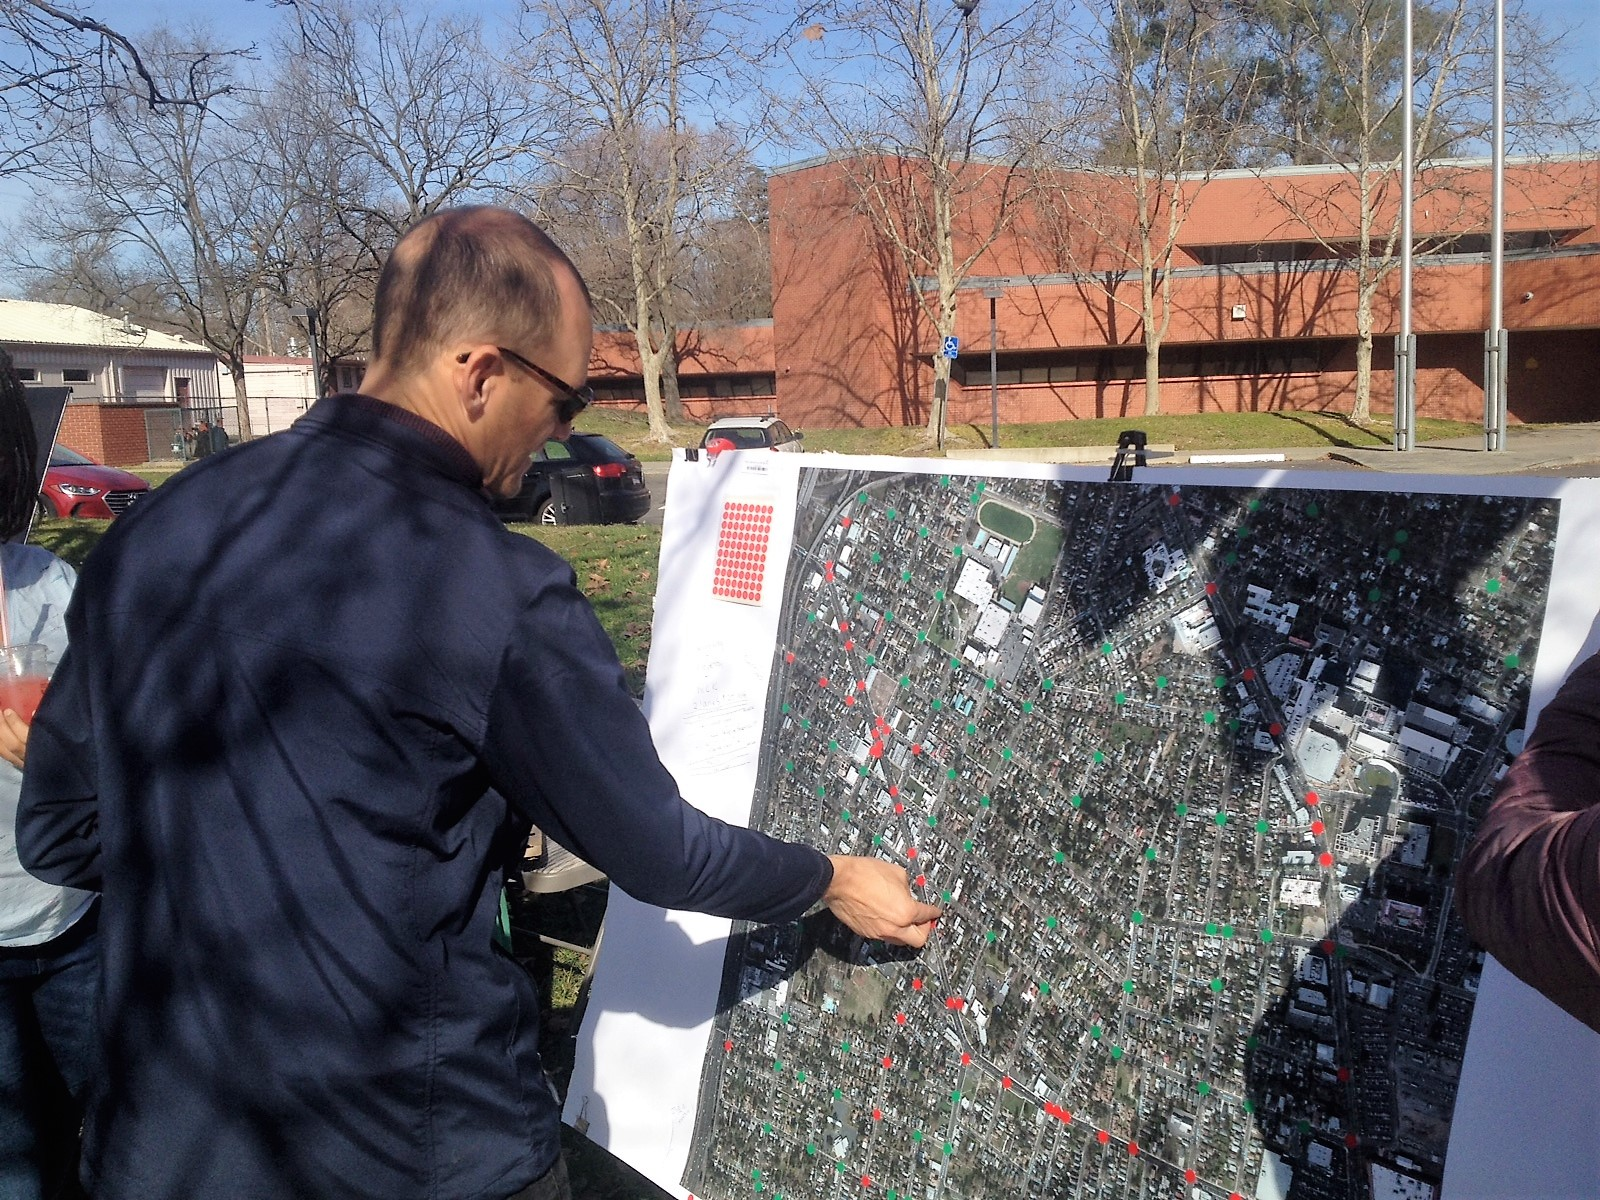 Assembly Member Kevin McCarty adds his feedback to the map.